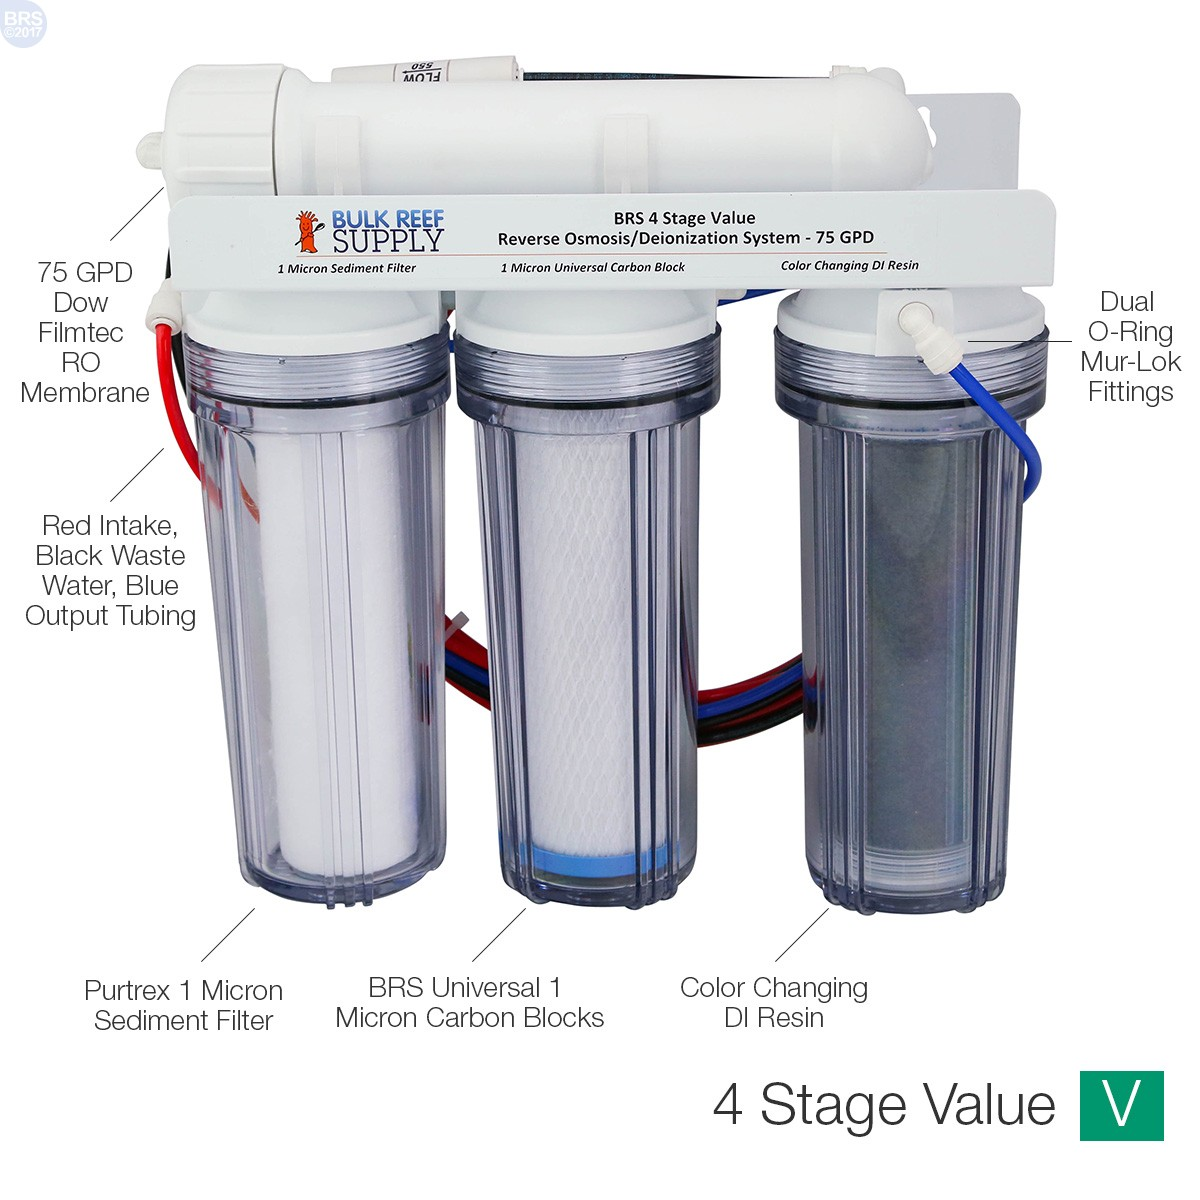 BRS 4 Stage Value RO/DI System - 75GPD - Bulk Reef Supply